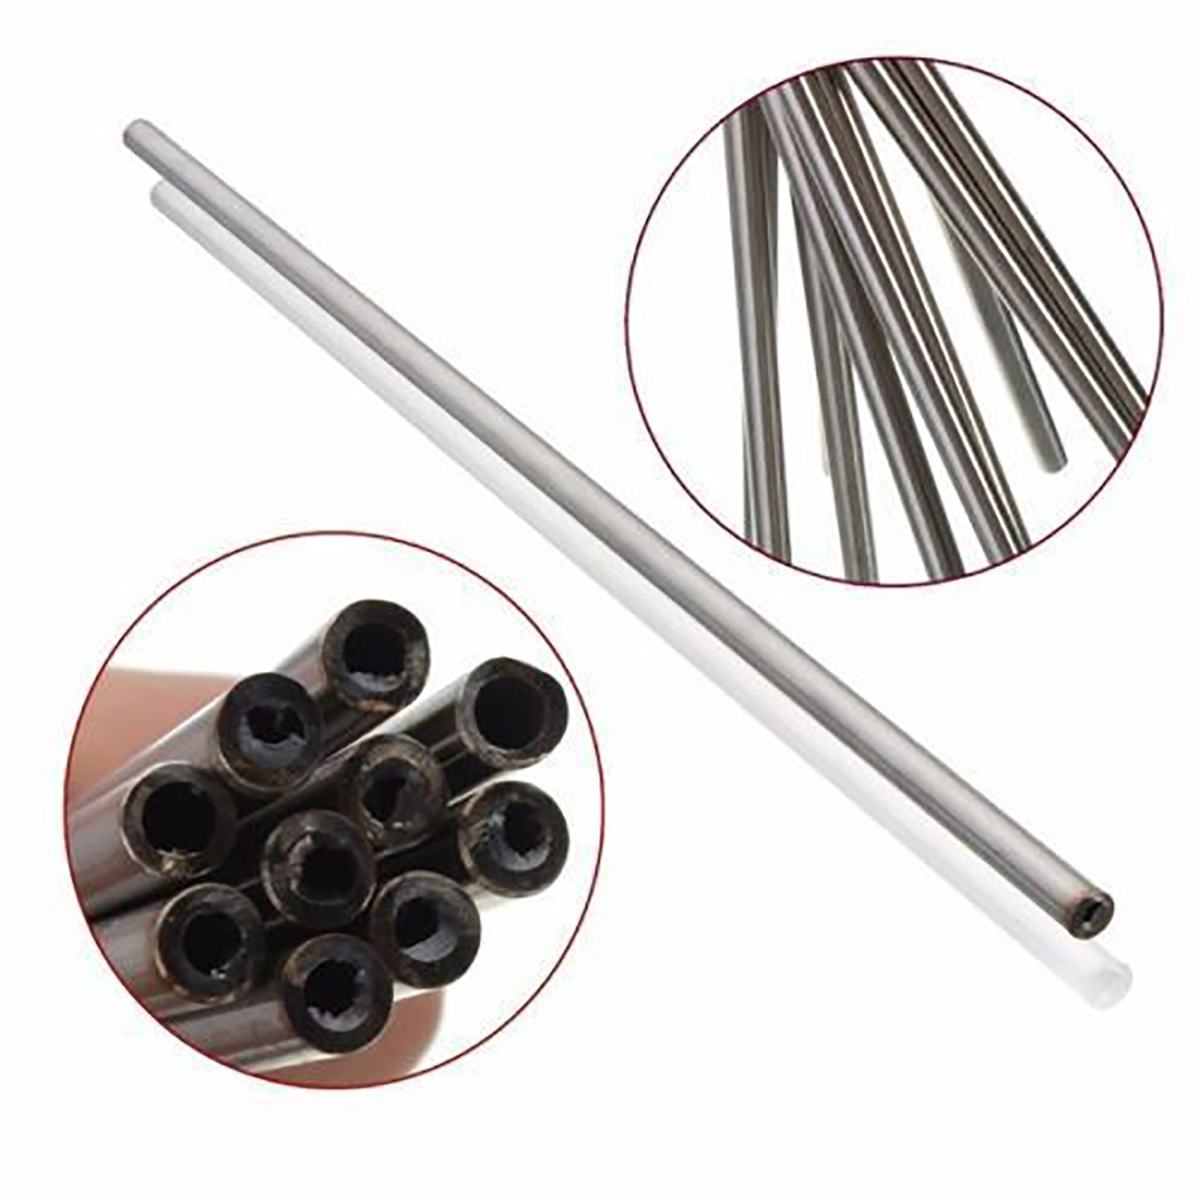 5pc New 304 Seamless Stainless Steel Capillary Tube 6mm OD 4mm ID 250mm Length